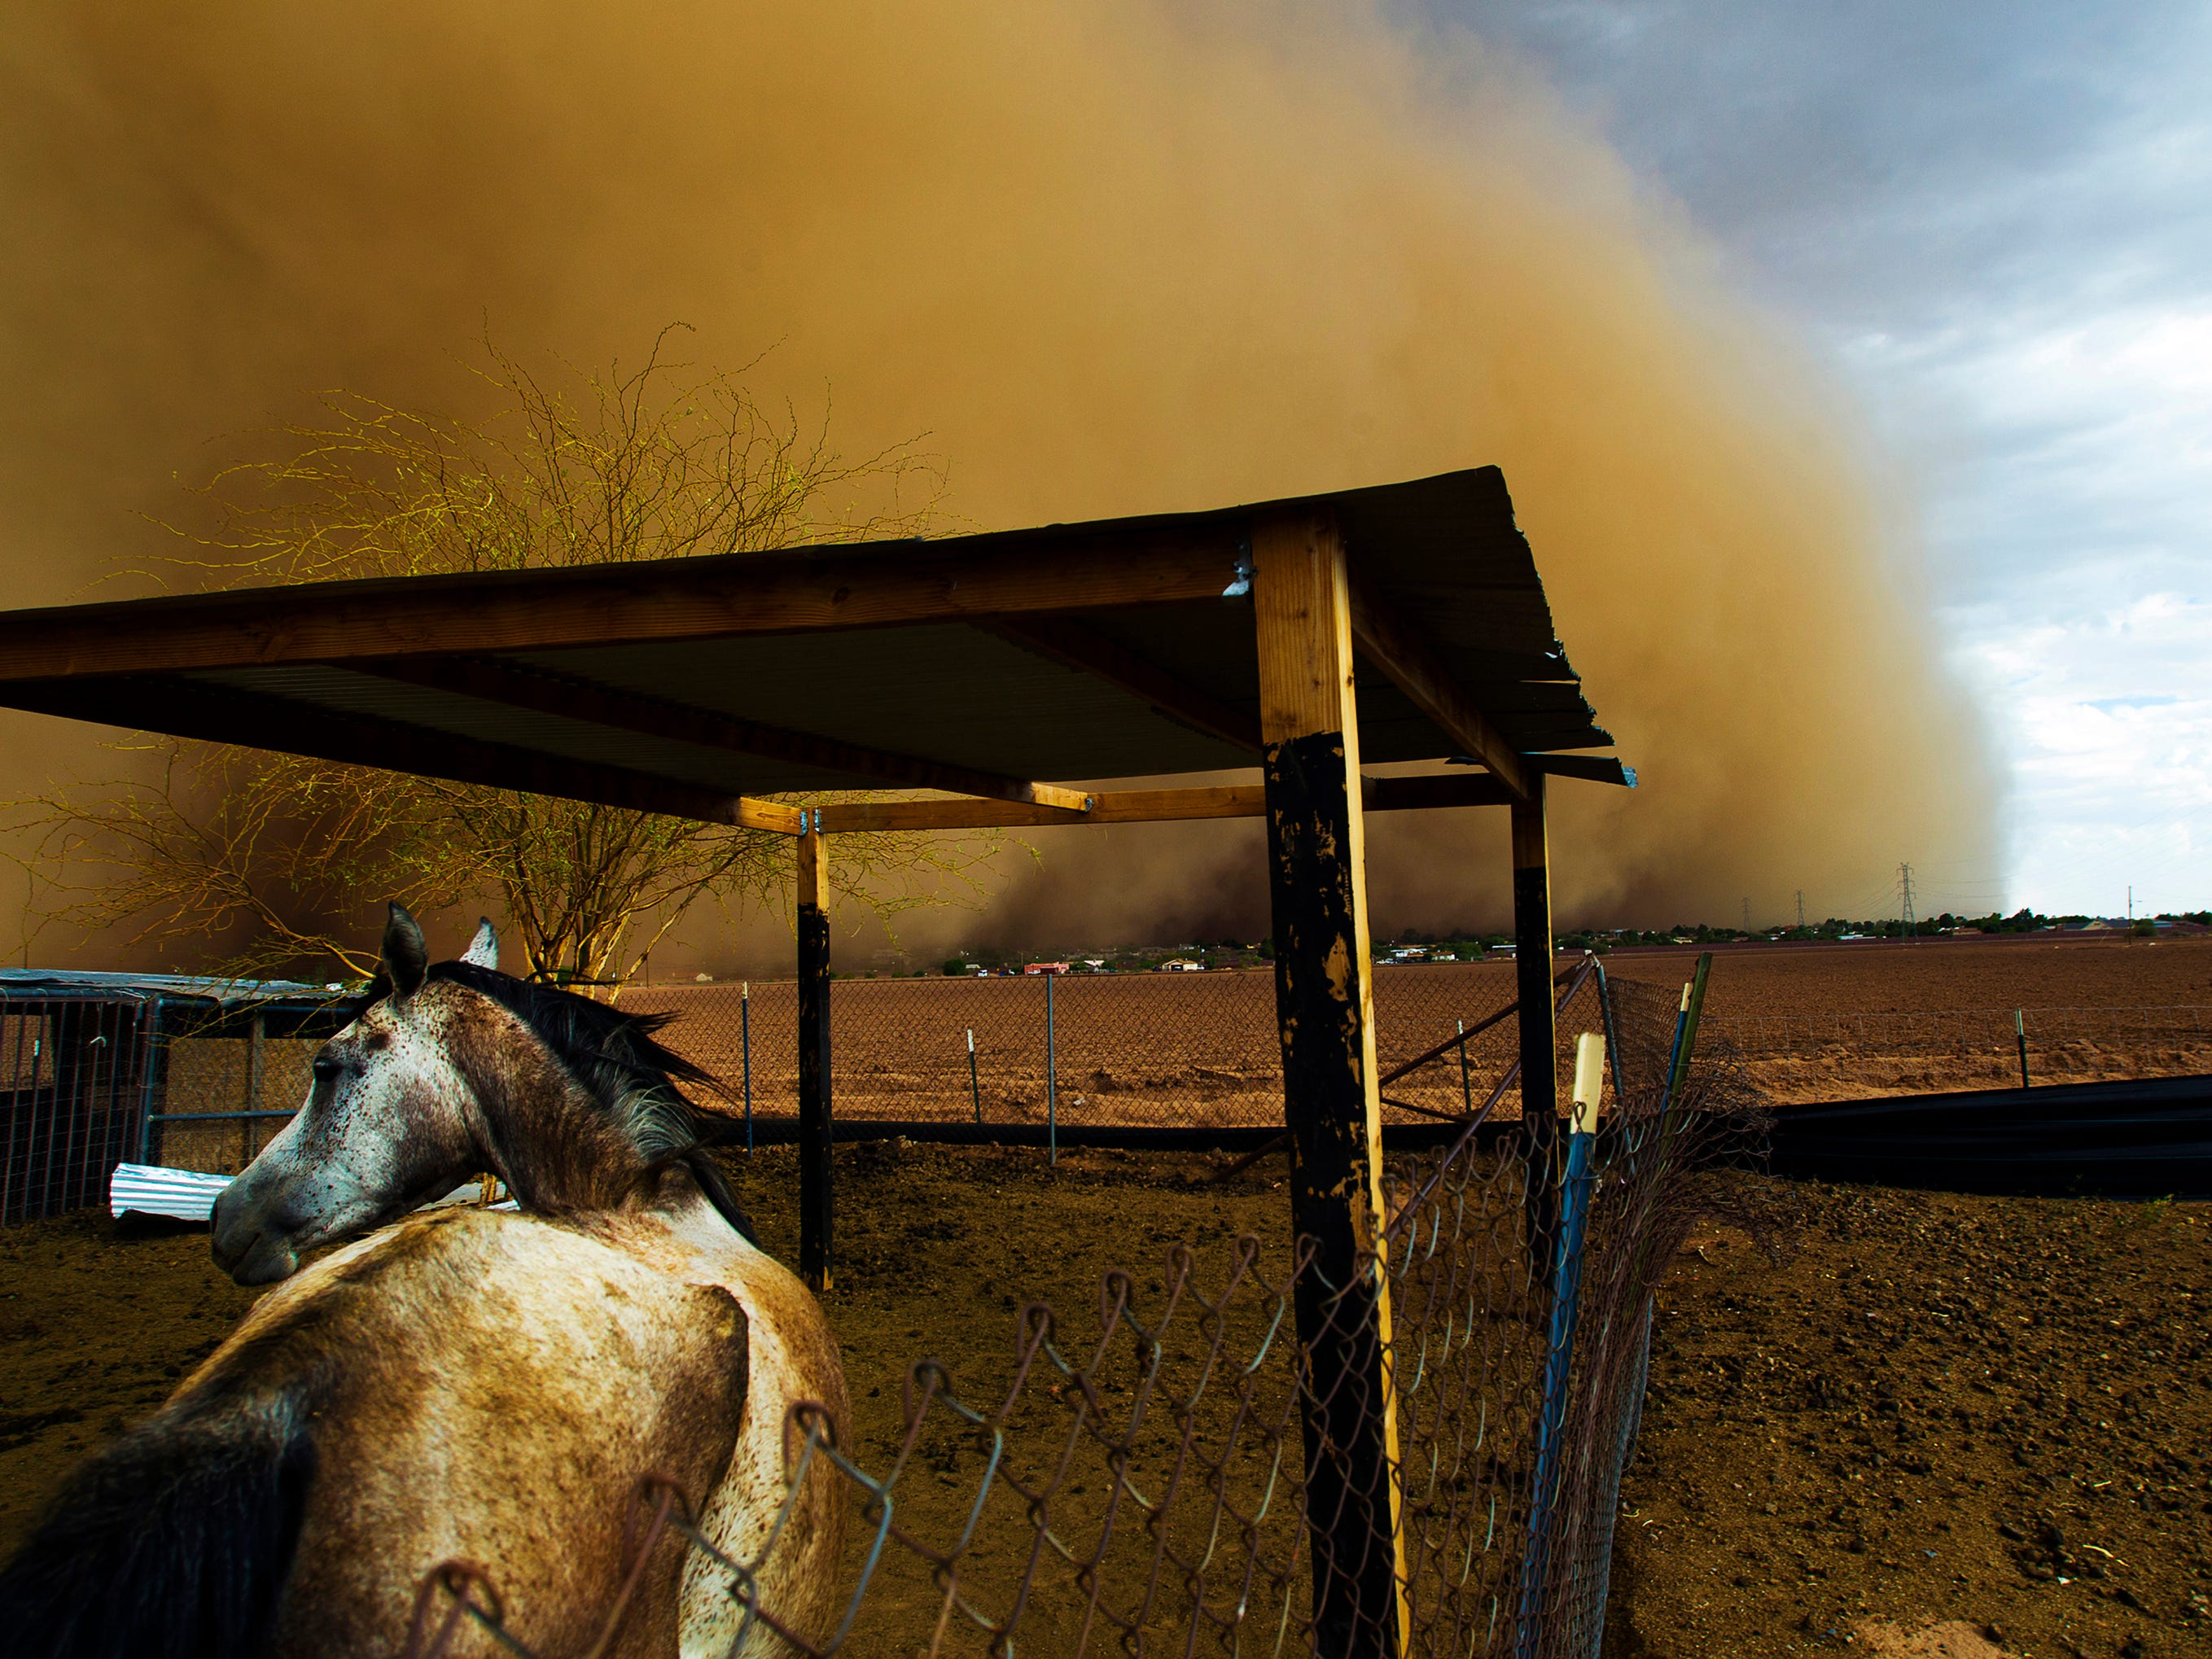 A haboob blows in over a horse on the Salt River Indian Reservation July 21, 2012. The wall of dust is a result of air pushed forward by the front of a thunderstorm cell, dragging dust and debris with it, as it travels across the terrain.